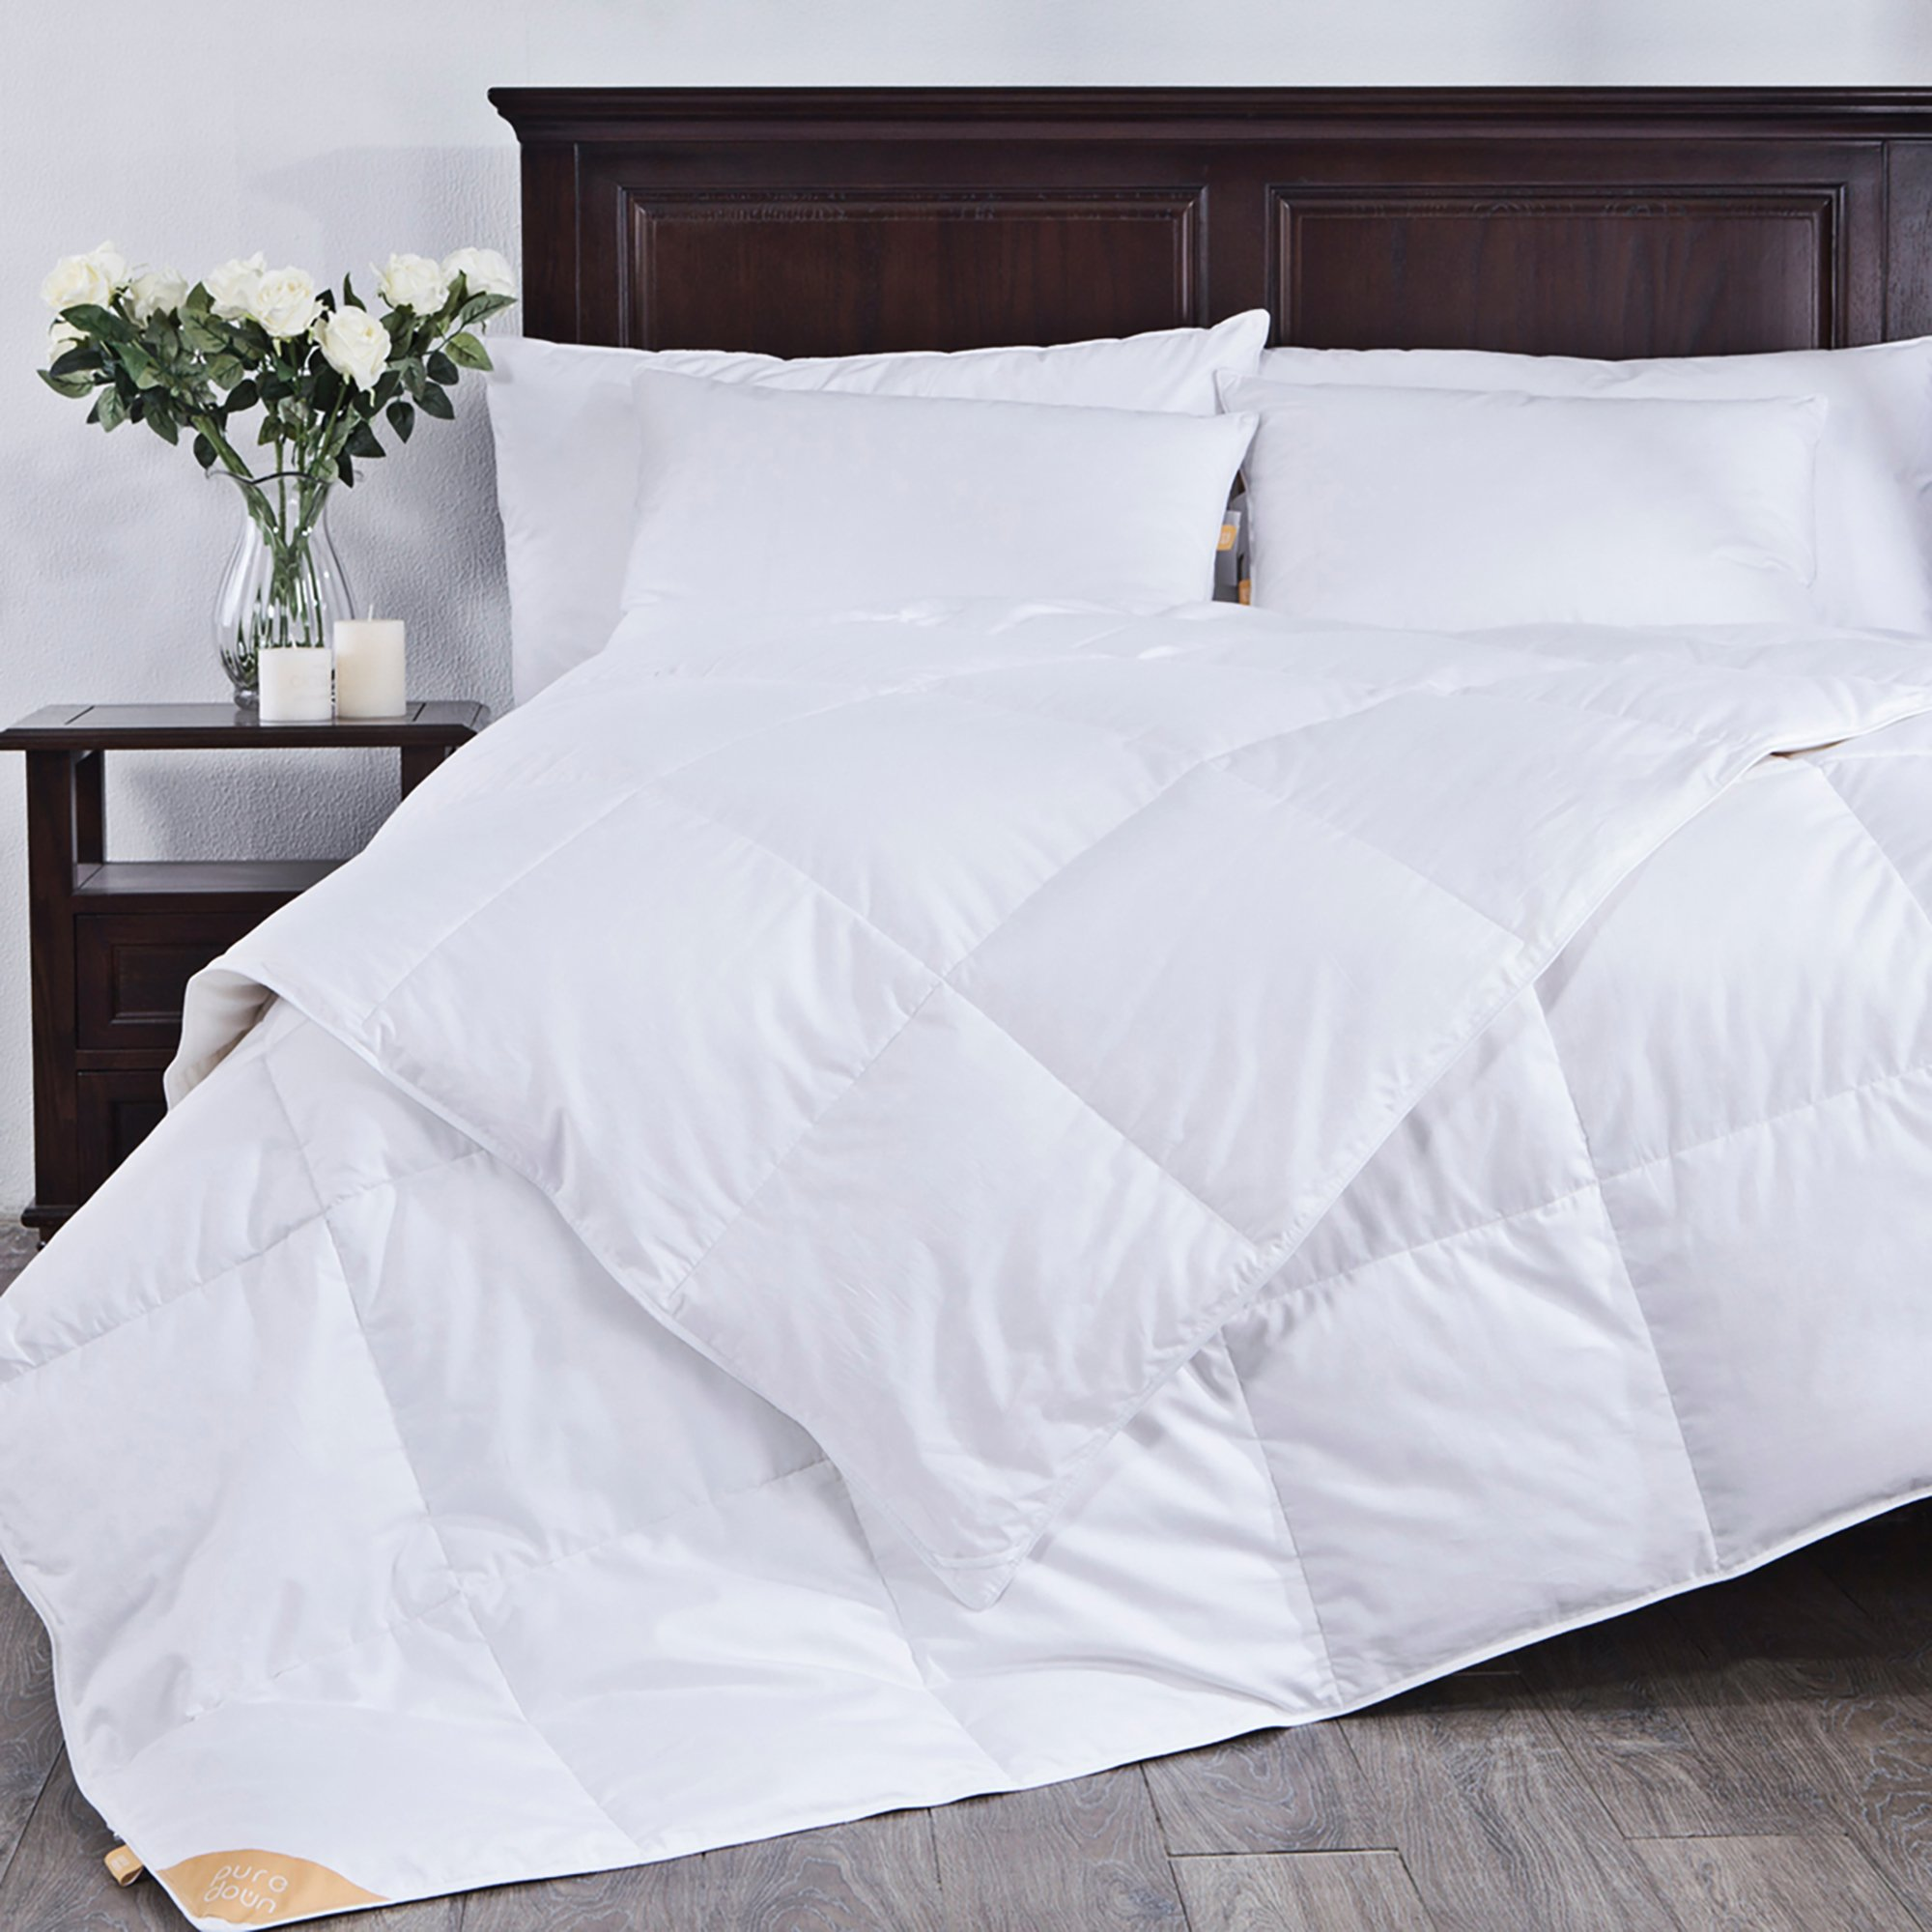 puredown Lightweight White Goose Down Comforter Duvet Insert 300 Thread Count 100% Cotton Fabric 600 Fill Power Down Down Conforter, Full/Queen, by puredown (Image #2)